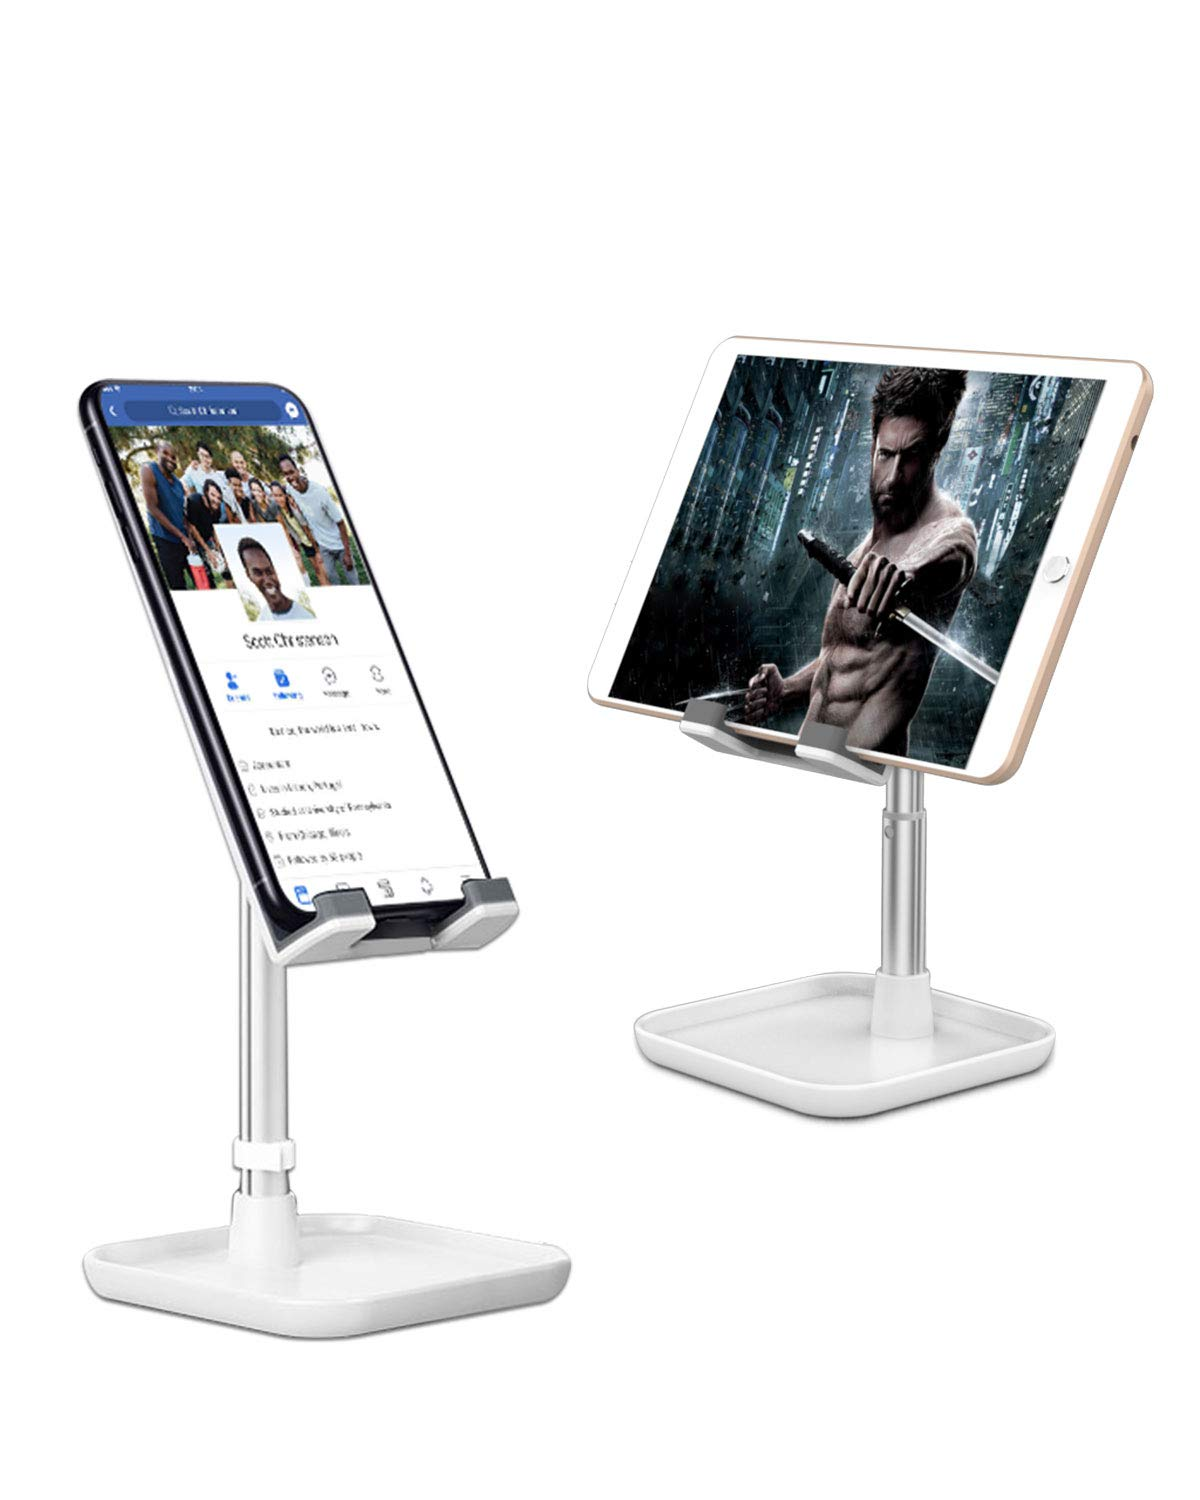 Cell Phone Stand, Height Angle Adjustable Phone Stand,Deep Dream Desktop Sturdy Aluminum Metal Phone Holder,Compatible with iPhone/iPad/Kindle/Mobile Phone/Tablet,4-13in